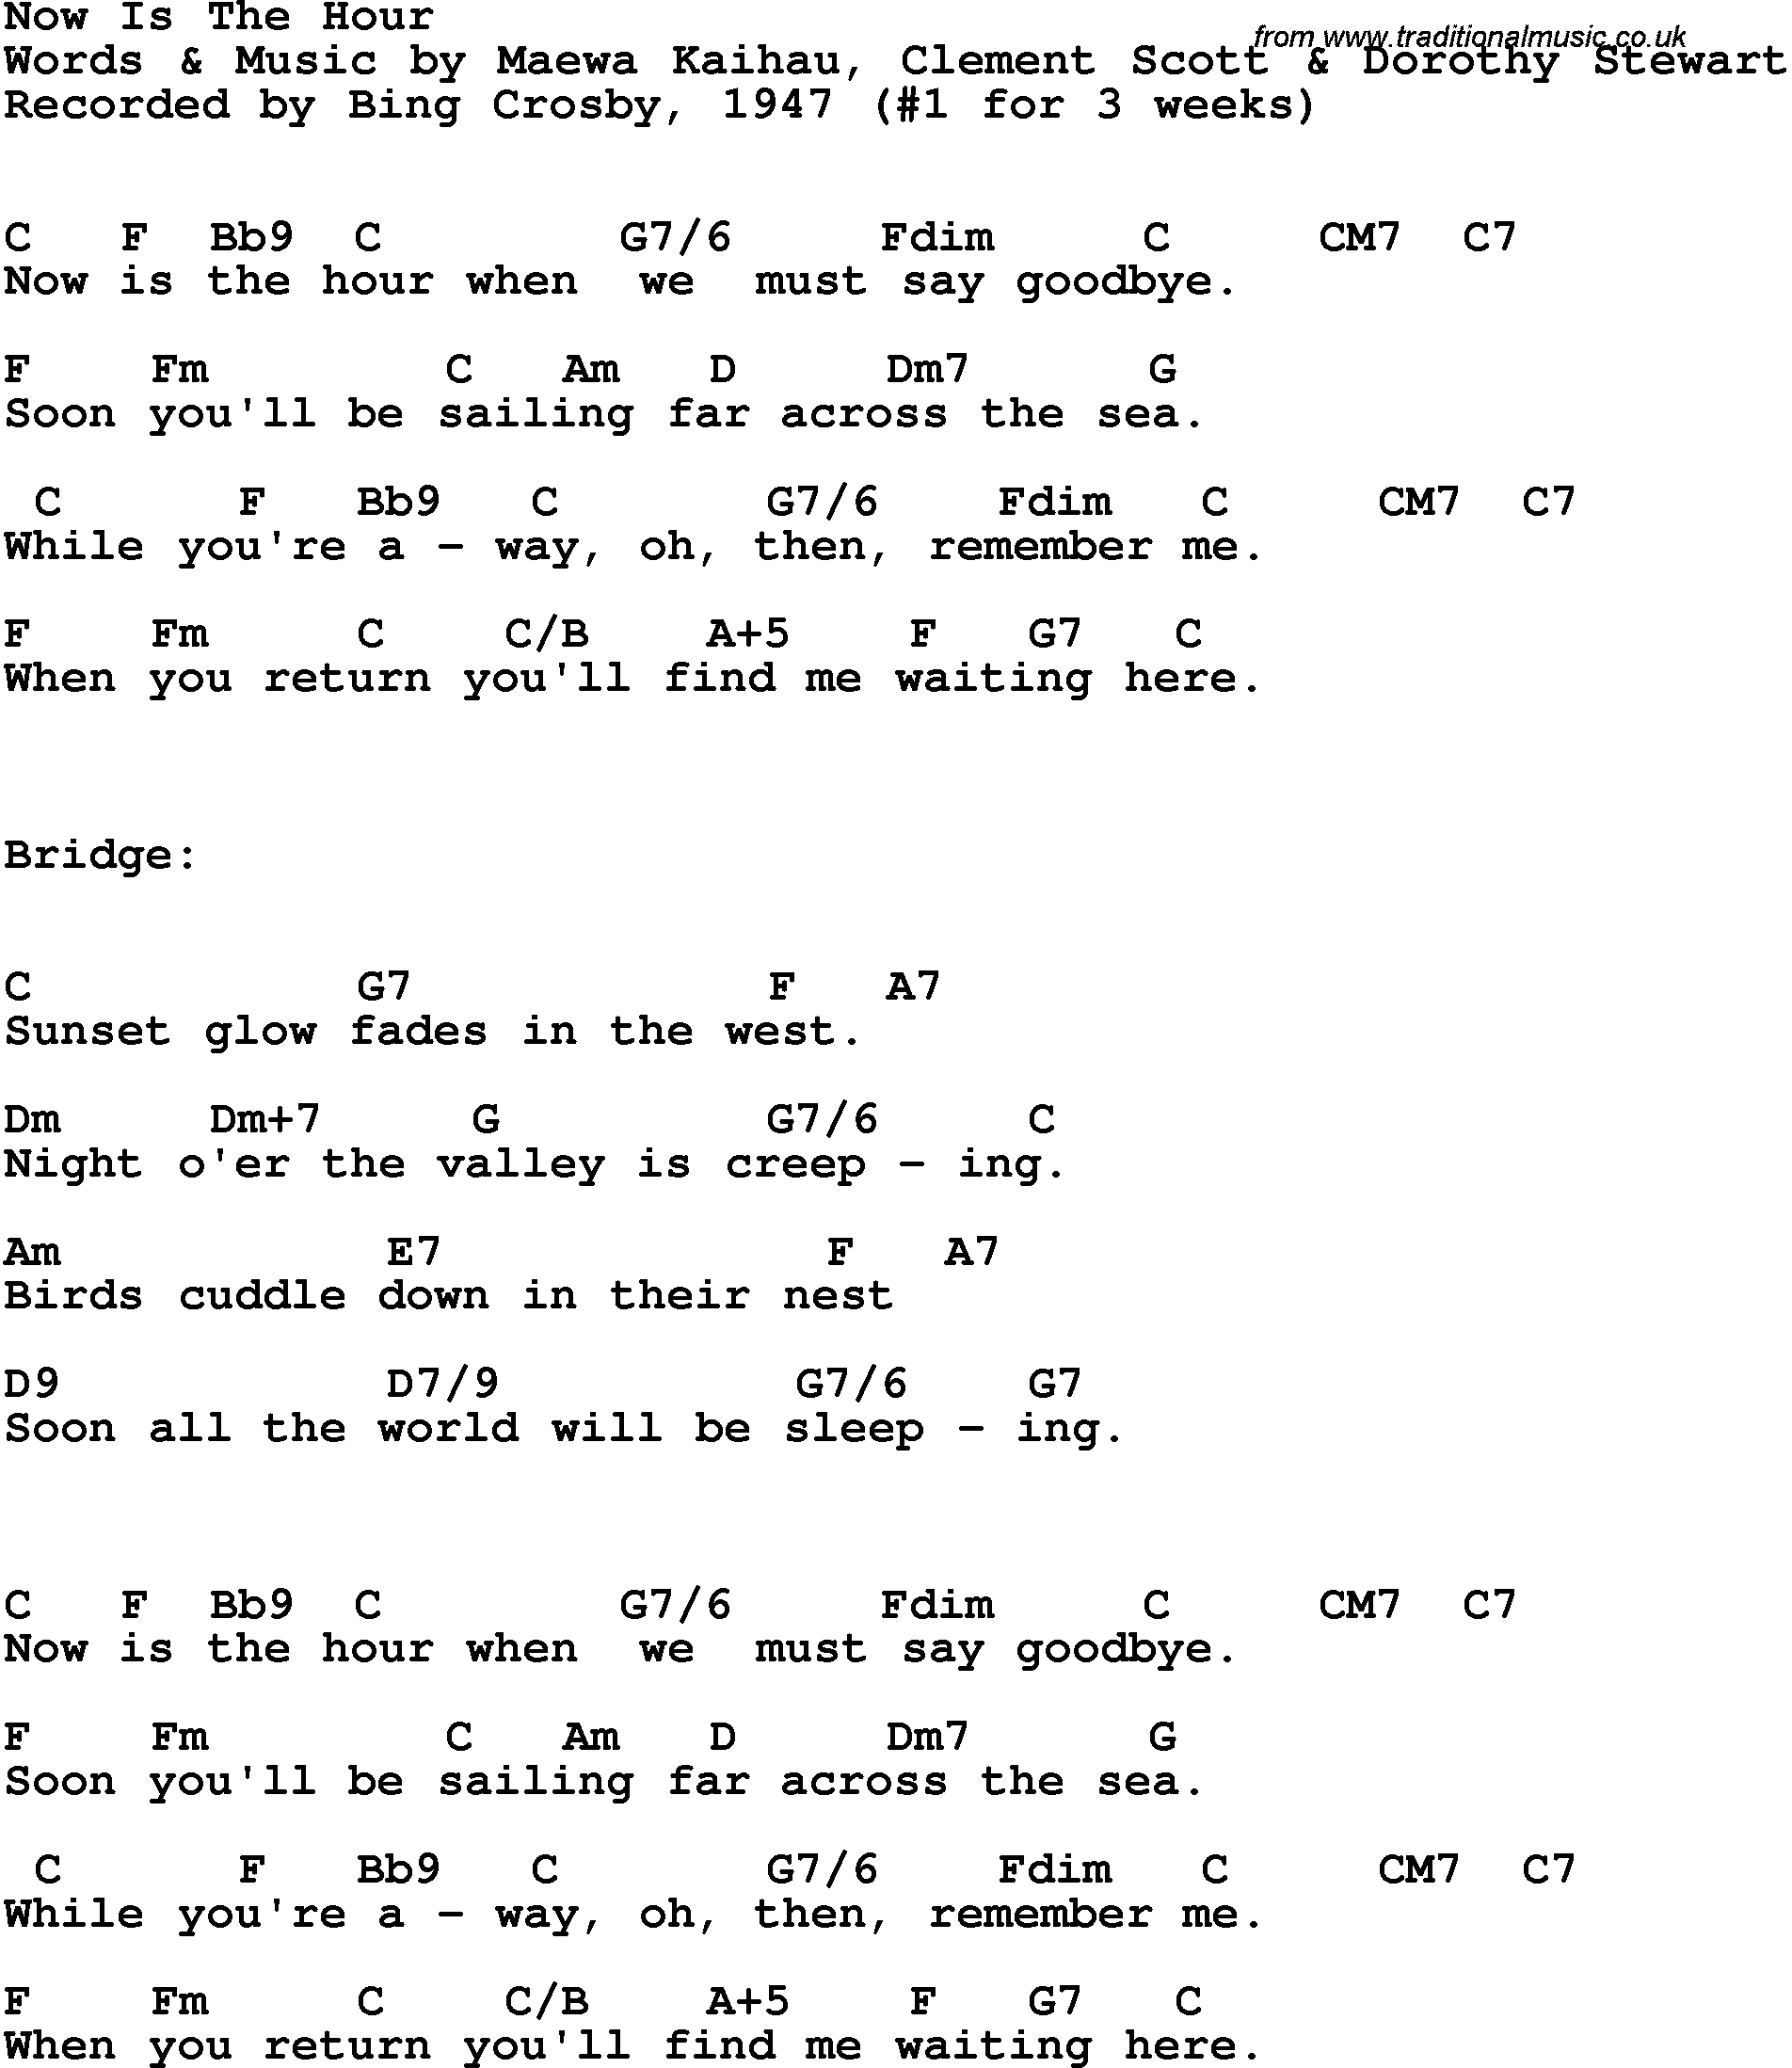 Song Lyrics With Guitar Chords For Now Is The Hour Bing Crosby 1947